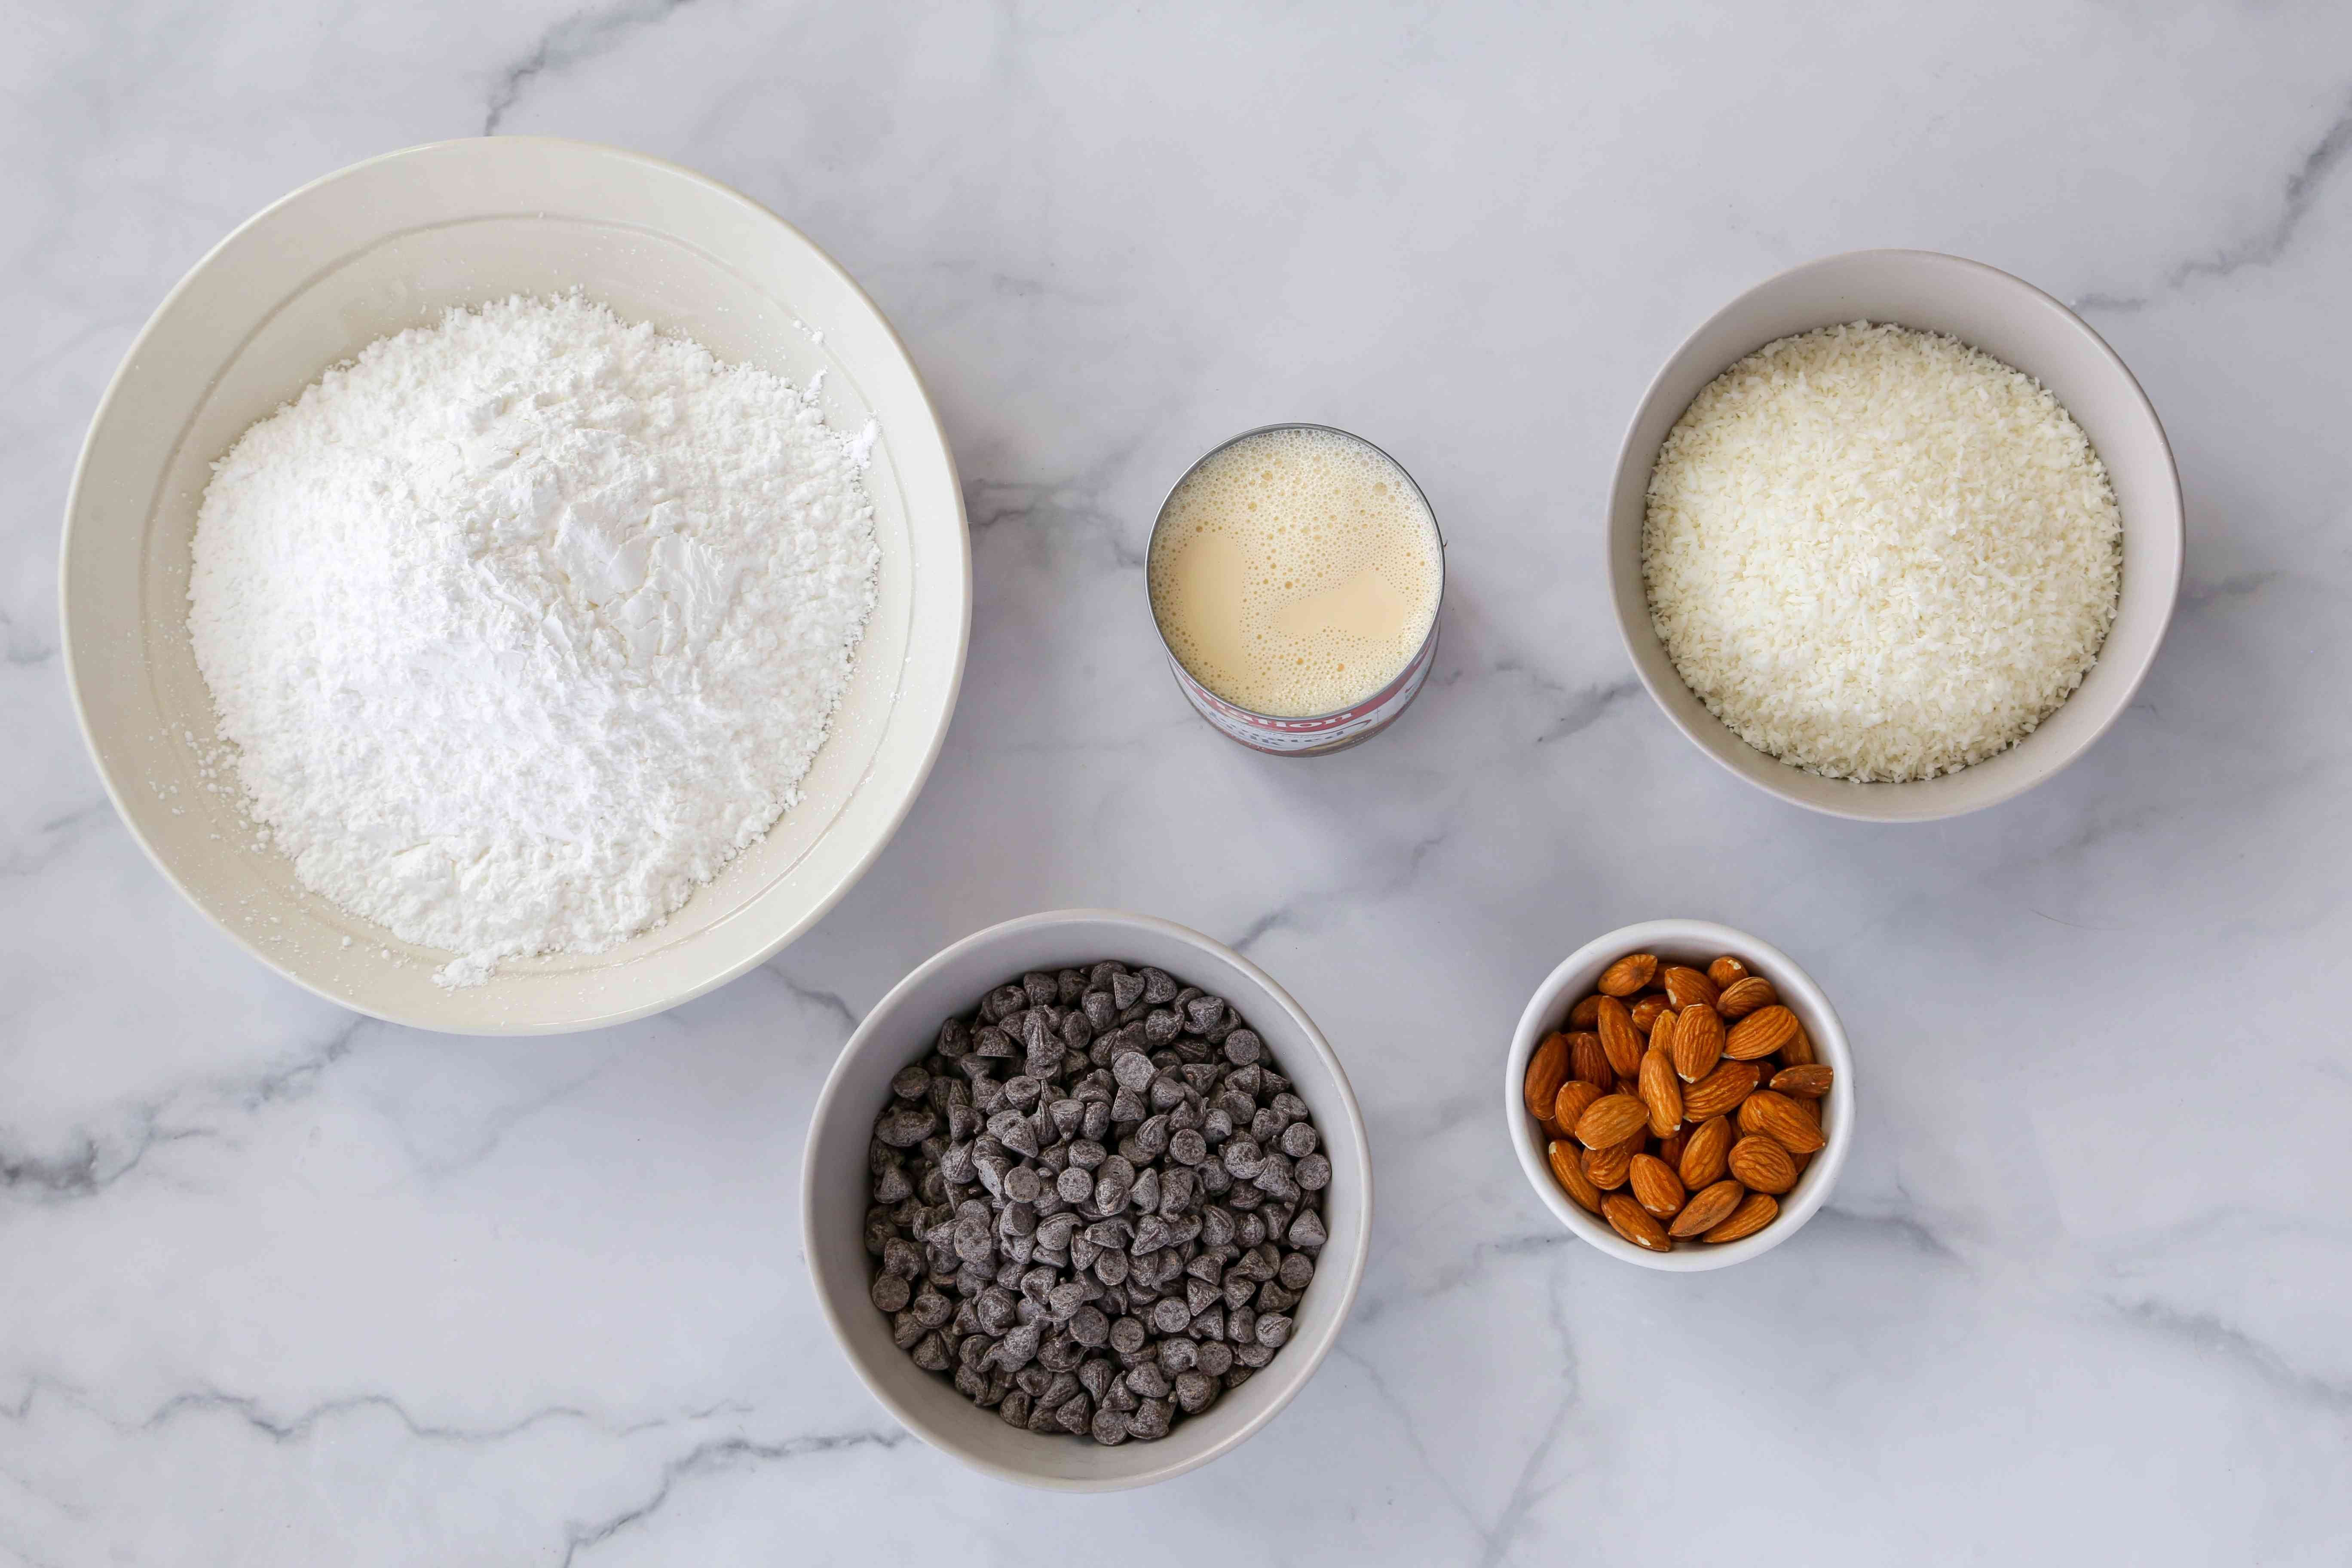 Gather the ingredients for almond joy cookies